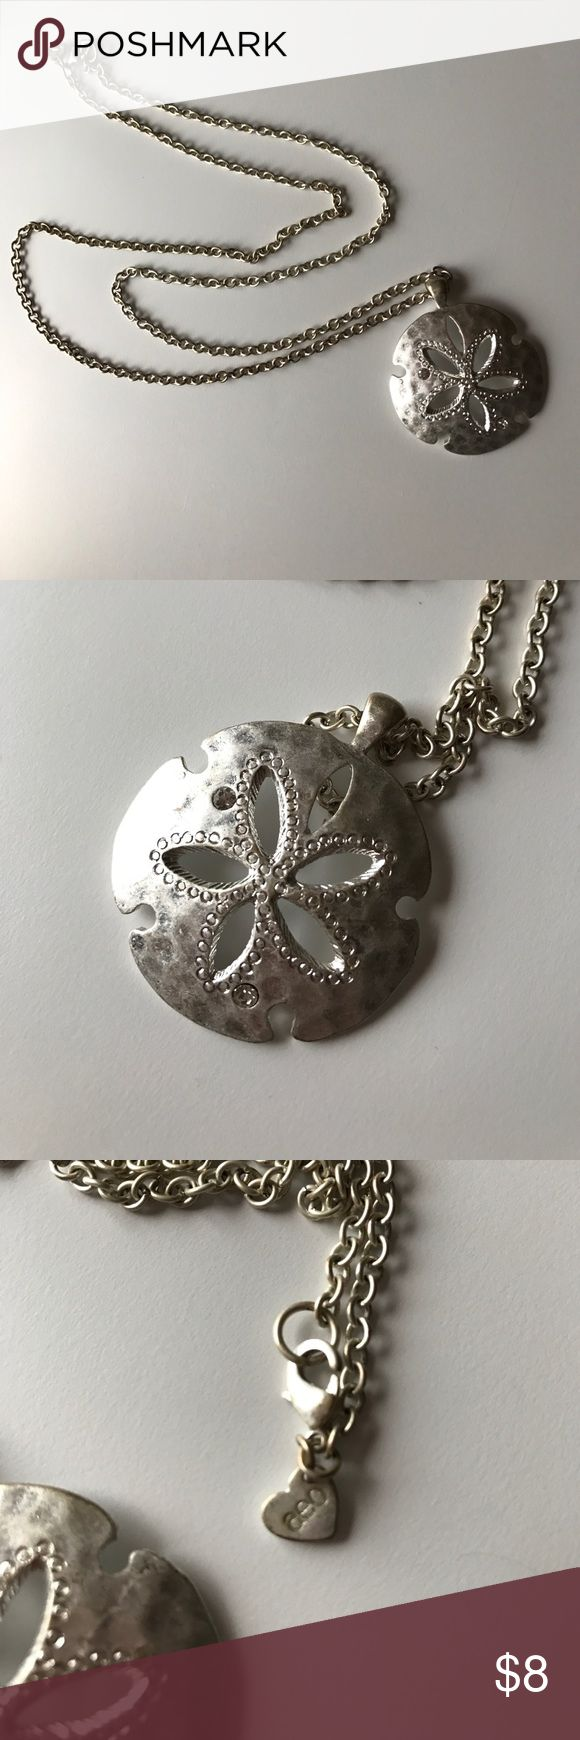 Long silver sand dollar pendent necklace American Eagle long silver pendent sand dollar necklace. Pendent features two rhinestones. American Eagle Outfitters Accessories